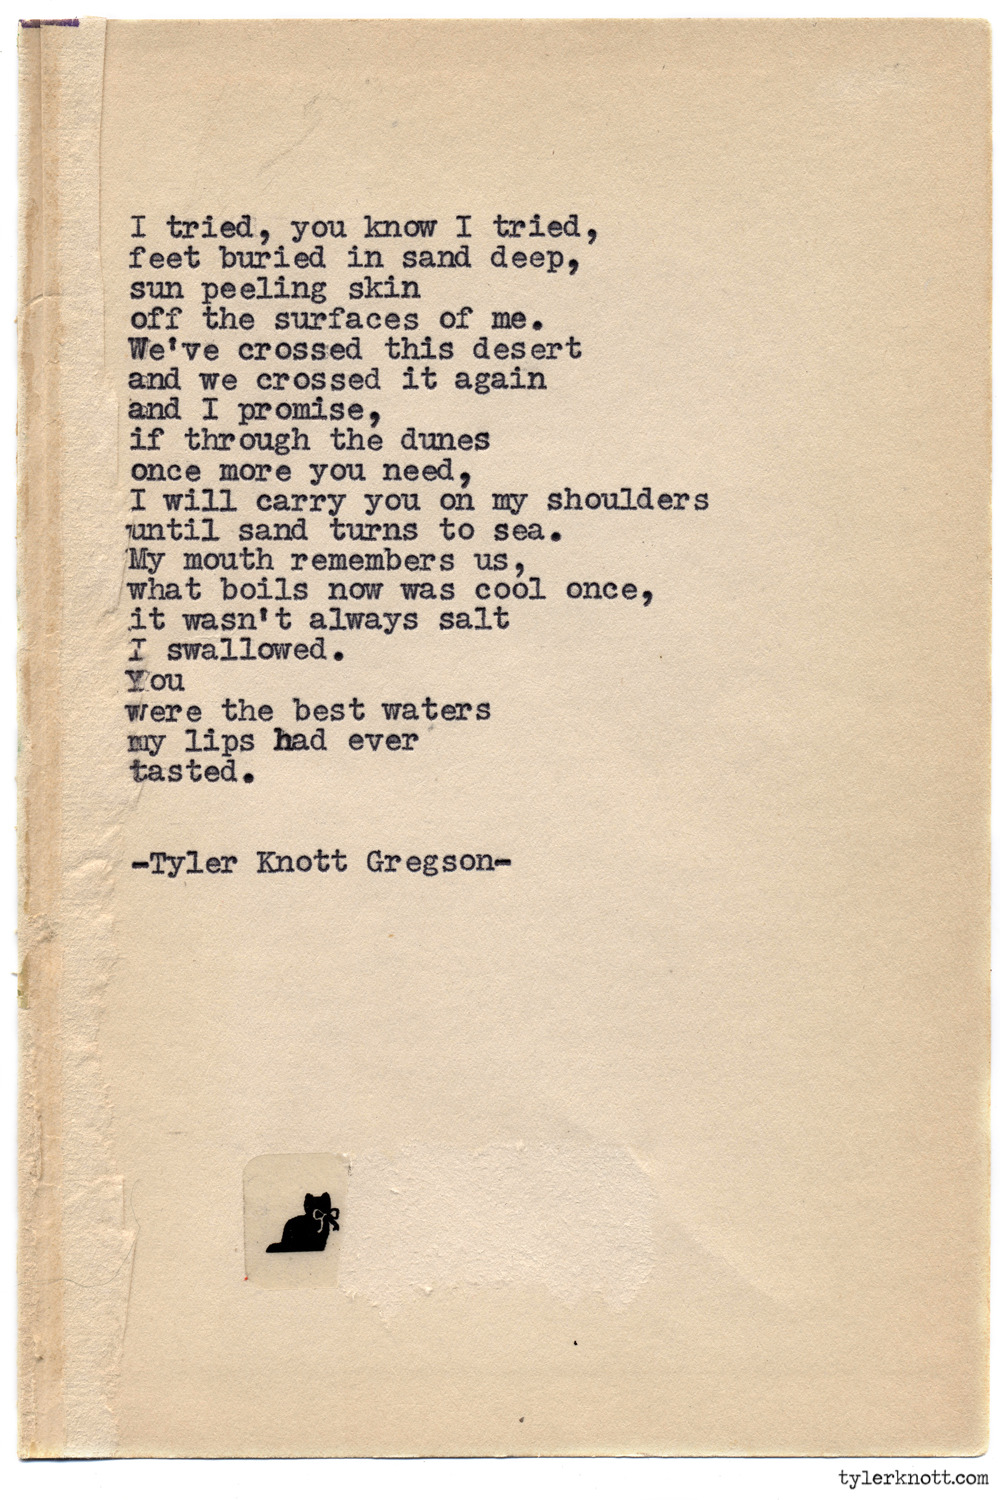 tylerknott:  Typewriter Series #891byTyler Knott Gregson *It's official, my book, Chasers of the Light,is out! You can order it through Amazon, Barnes and Noble, IndieBound or Books-A-Million *